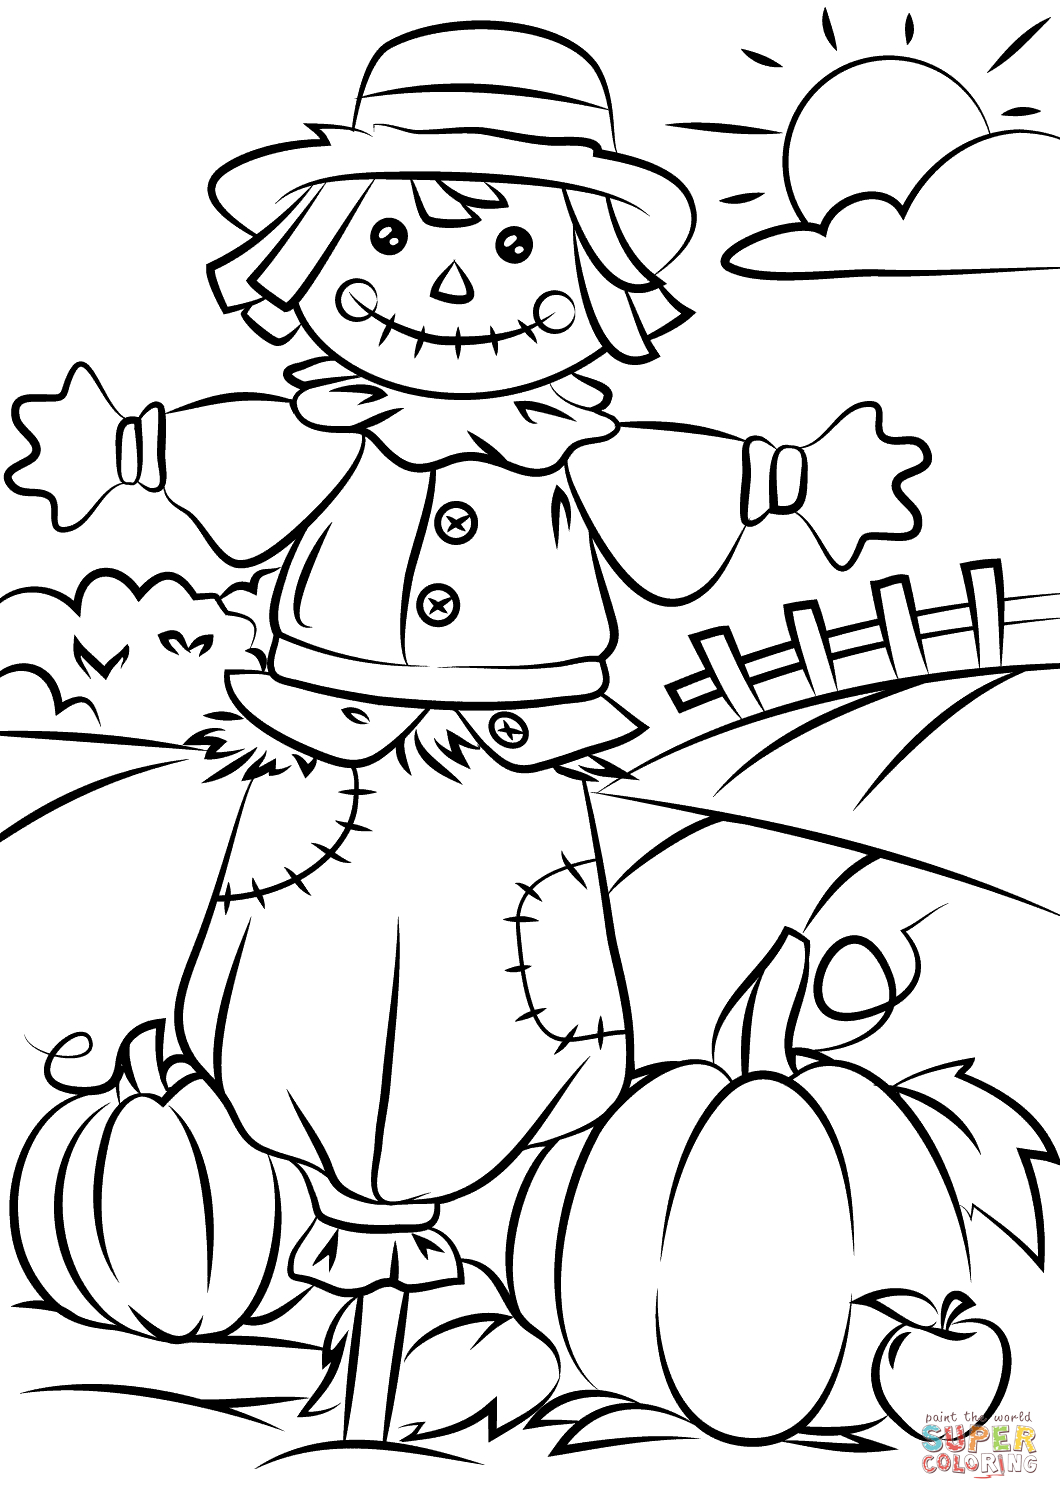 Autumn Scene With Scarecrow Coloring Page | Free Printable Coloring - Free Printable Coloring Pages Fall Season